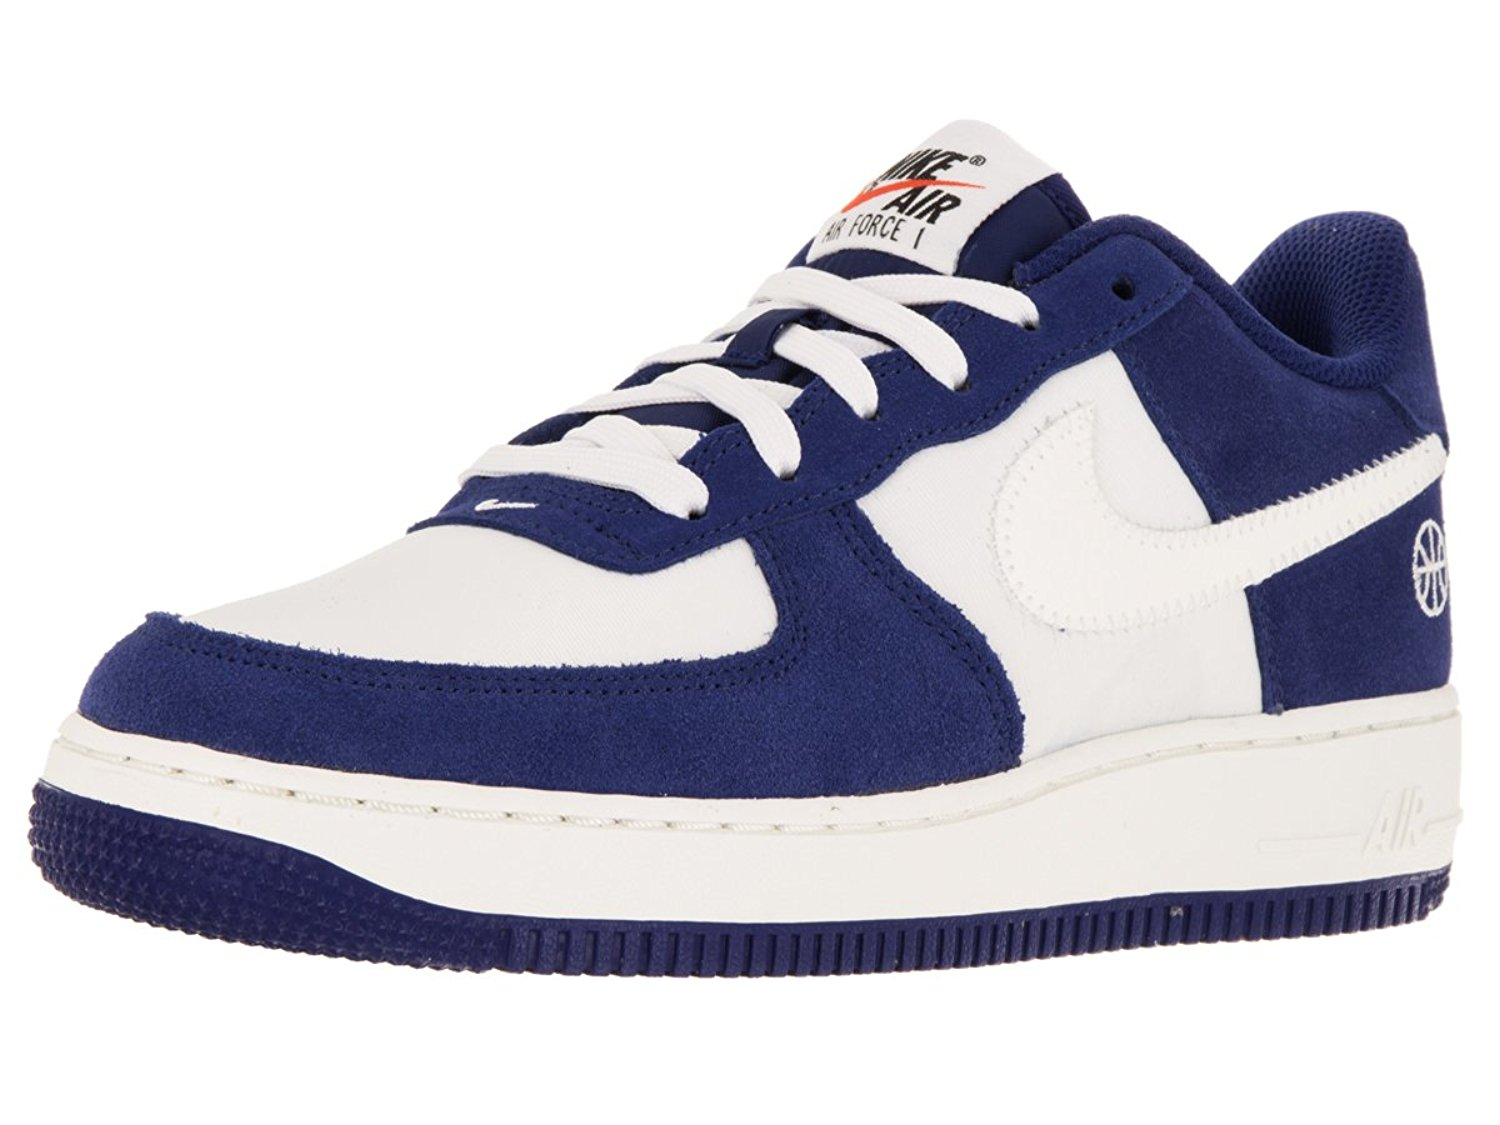 sports shoes c20ee 4a730 Nike Kids Air Force 1 (GS) Deep Royal Blue Sail Phantom Basketball